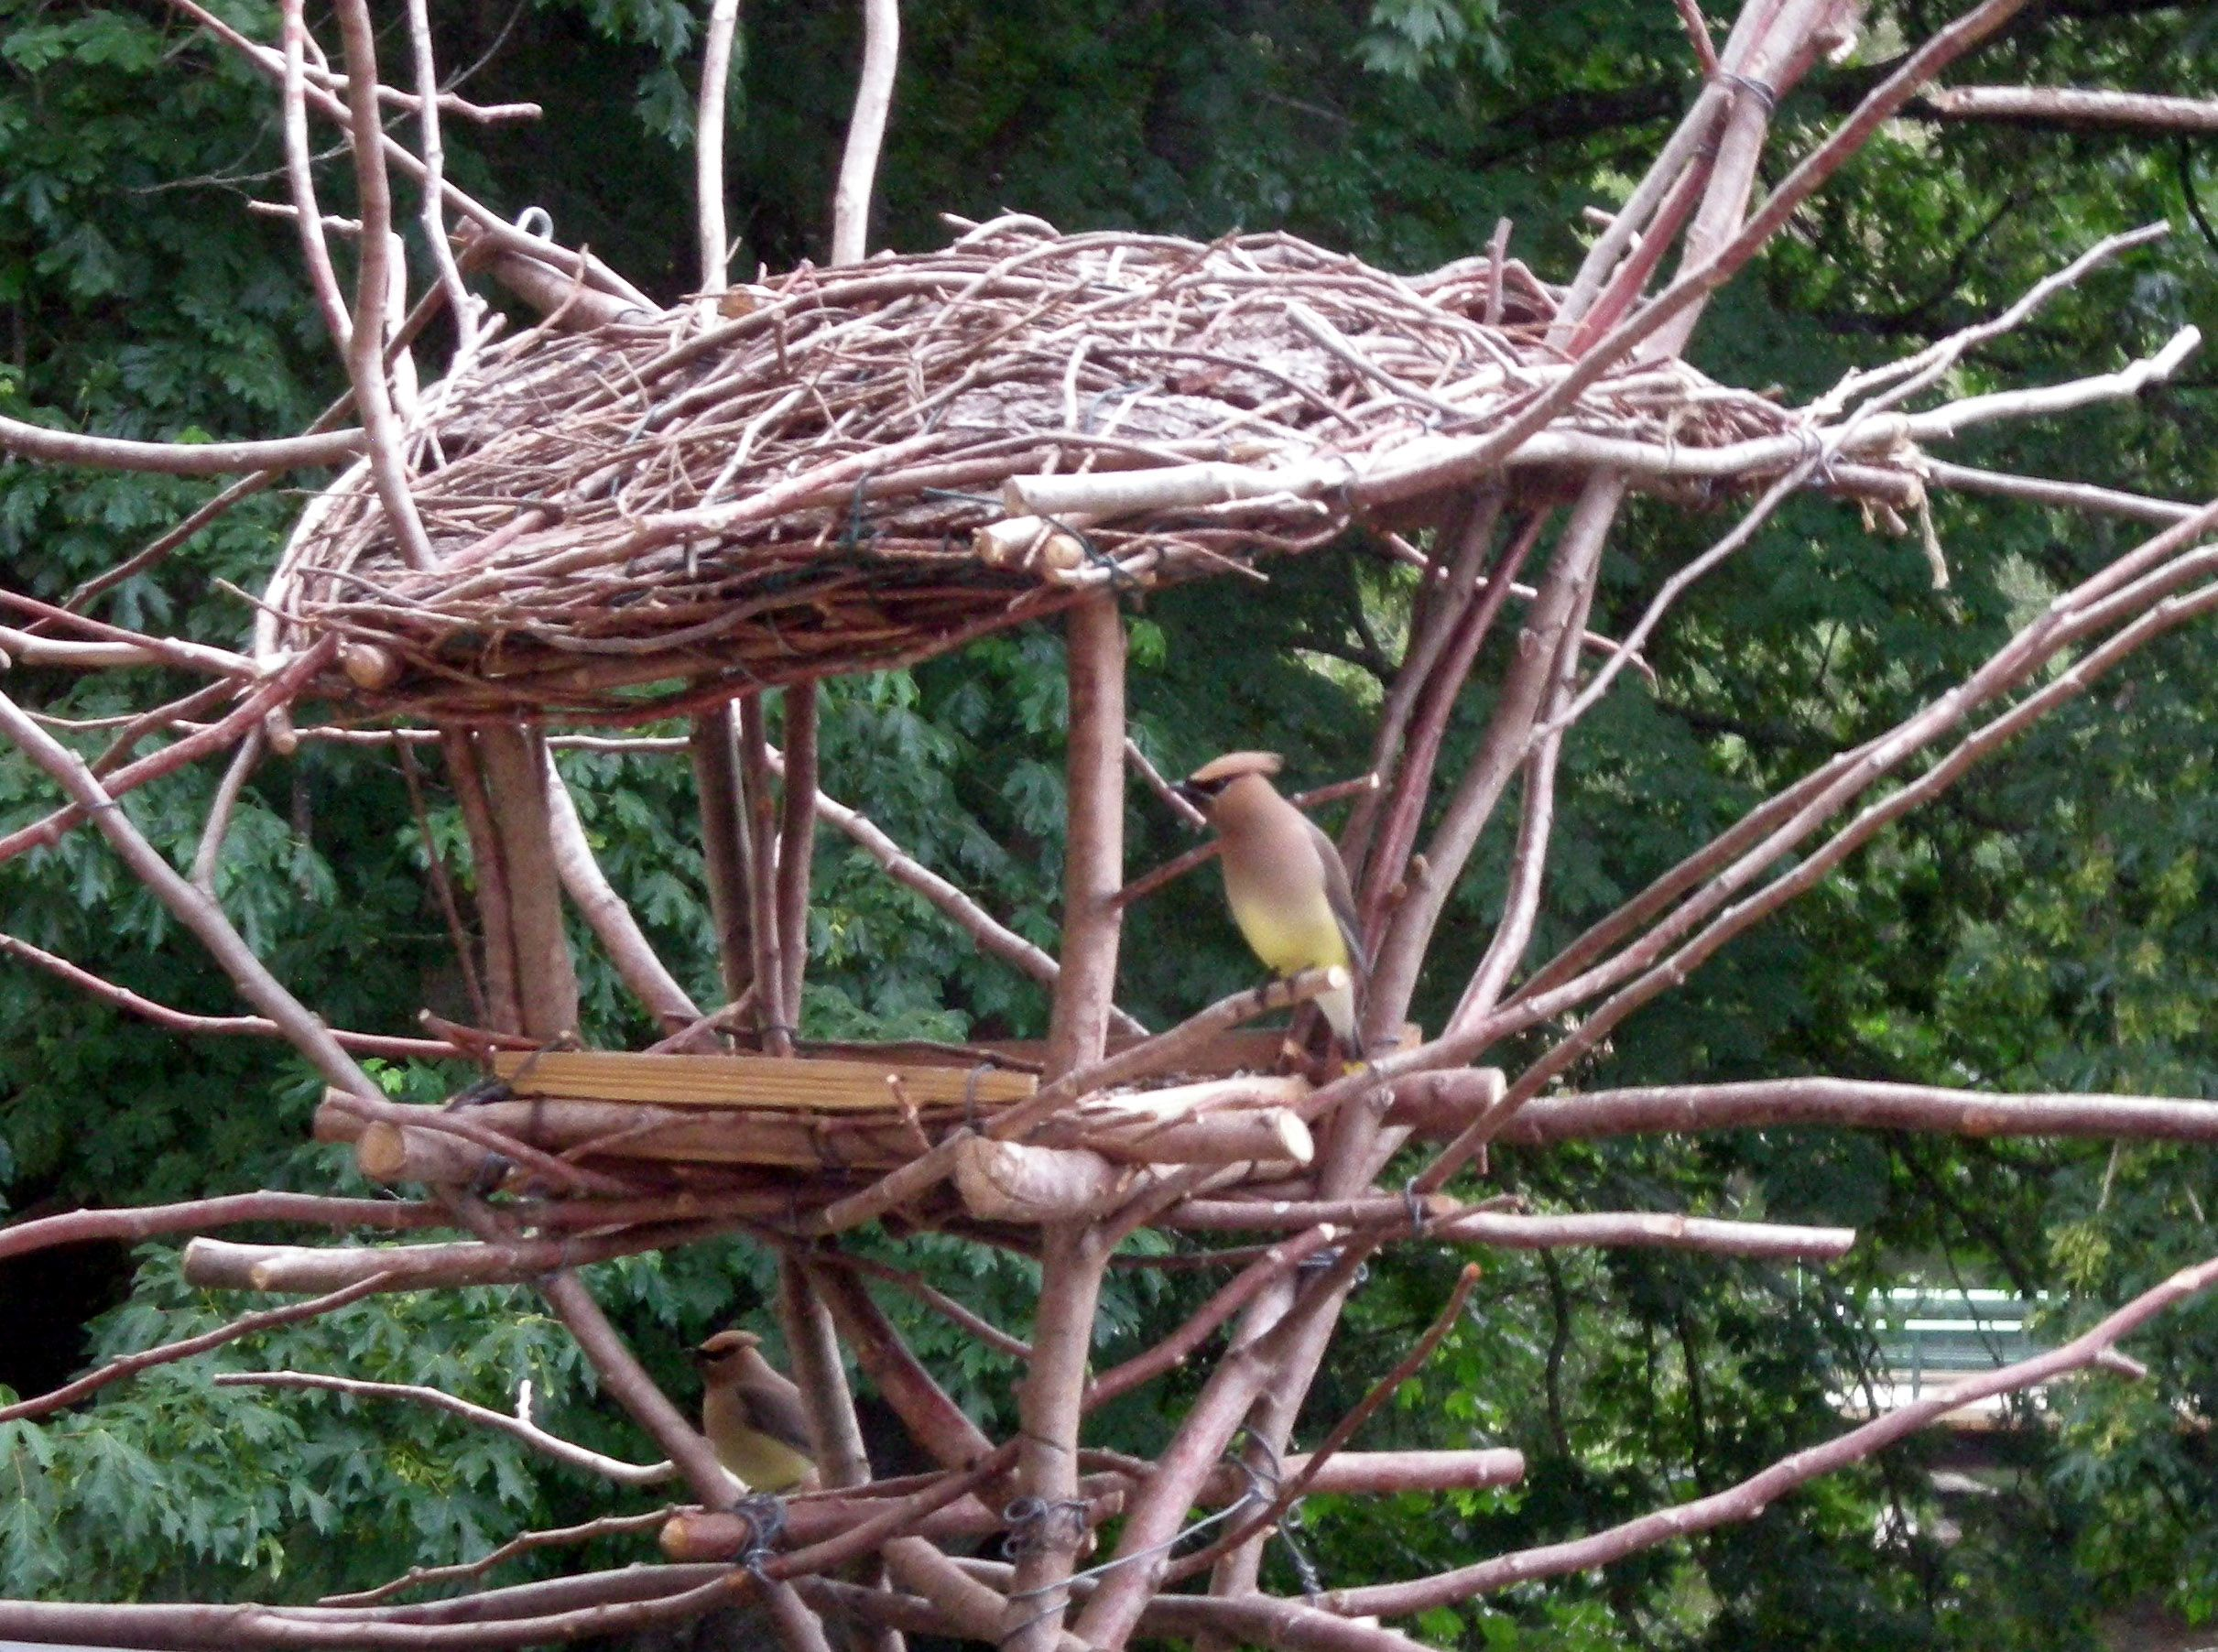 cedar waxwing on custom made bird feeder made from tree branches